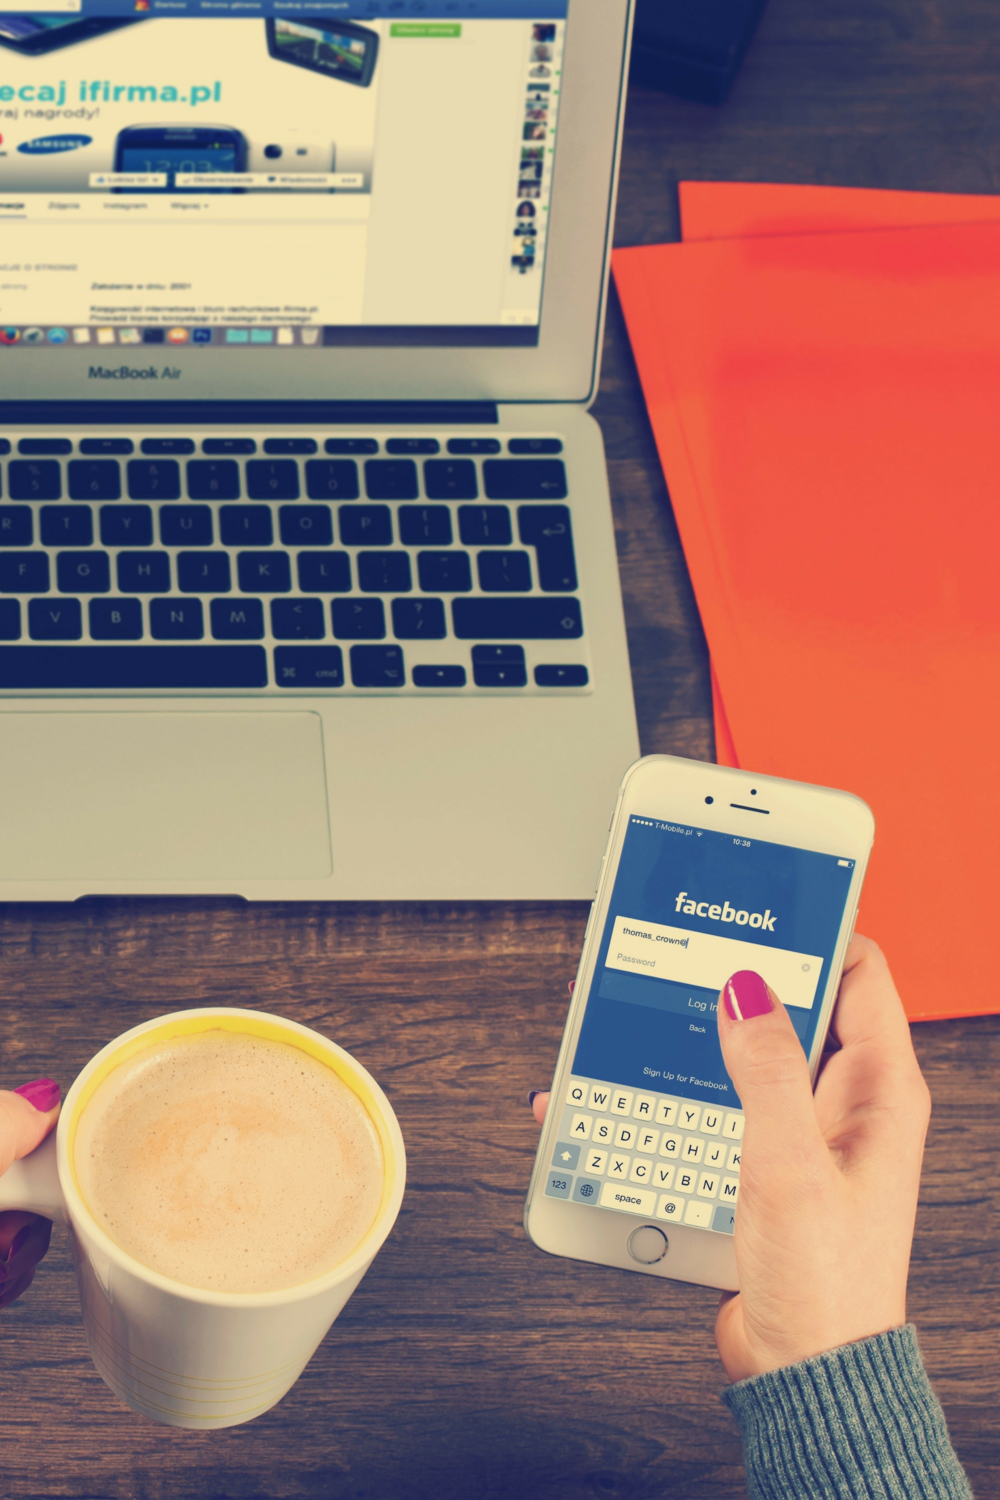 Facebook Ads - YOUR MOST POWERFUL MARKETING TOOL SHOULD BE MANAGED BY EXPERTS THAT CAN DRIVE GROWTH.